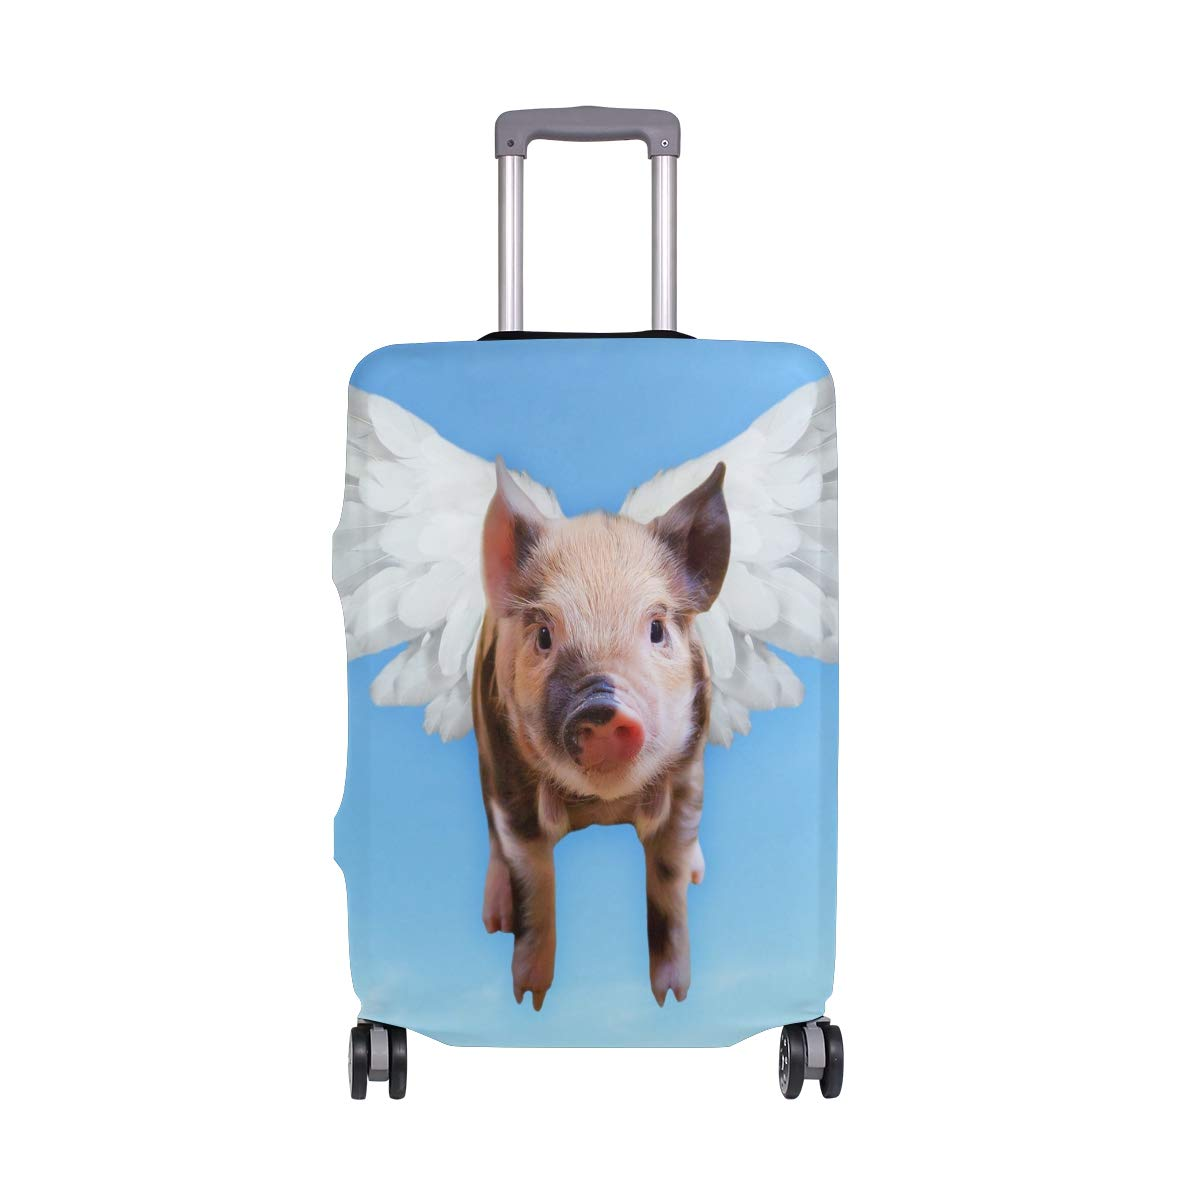 Travel Luggage Cover Funny Flying Pig Suitcase Protector Fits 26-28 Inch Washable Baggage Covers